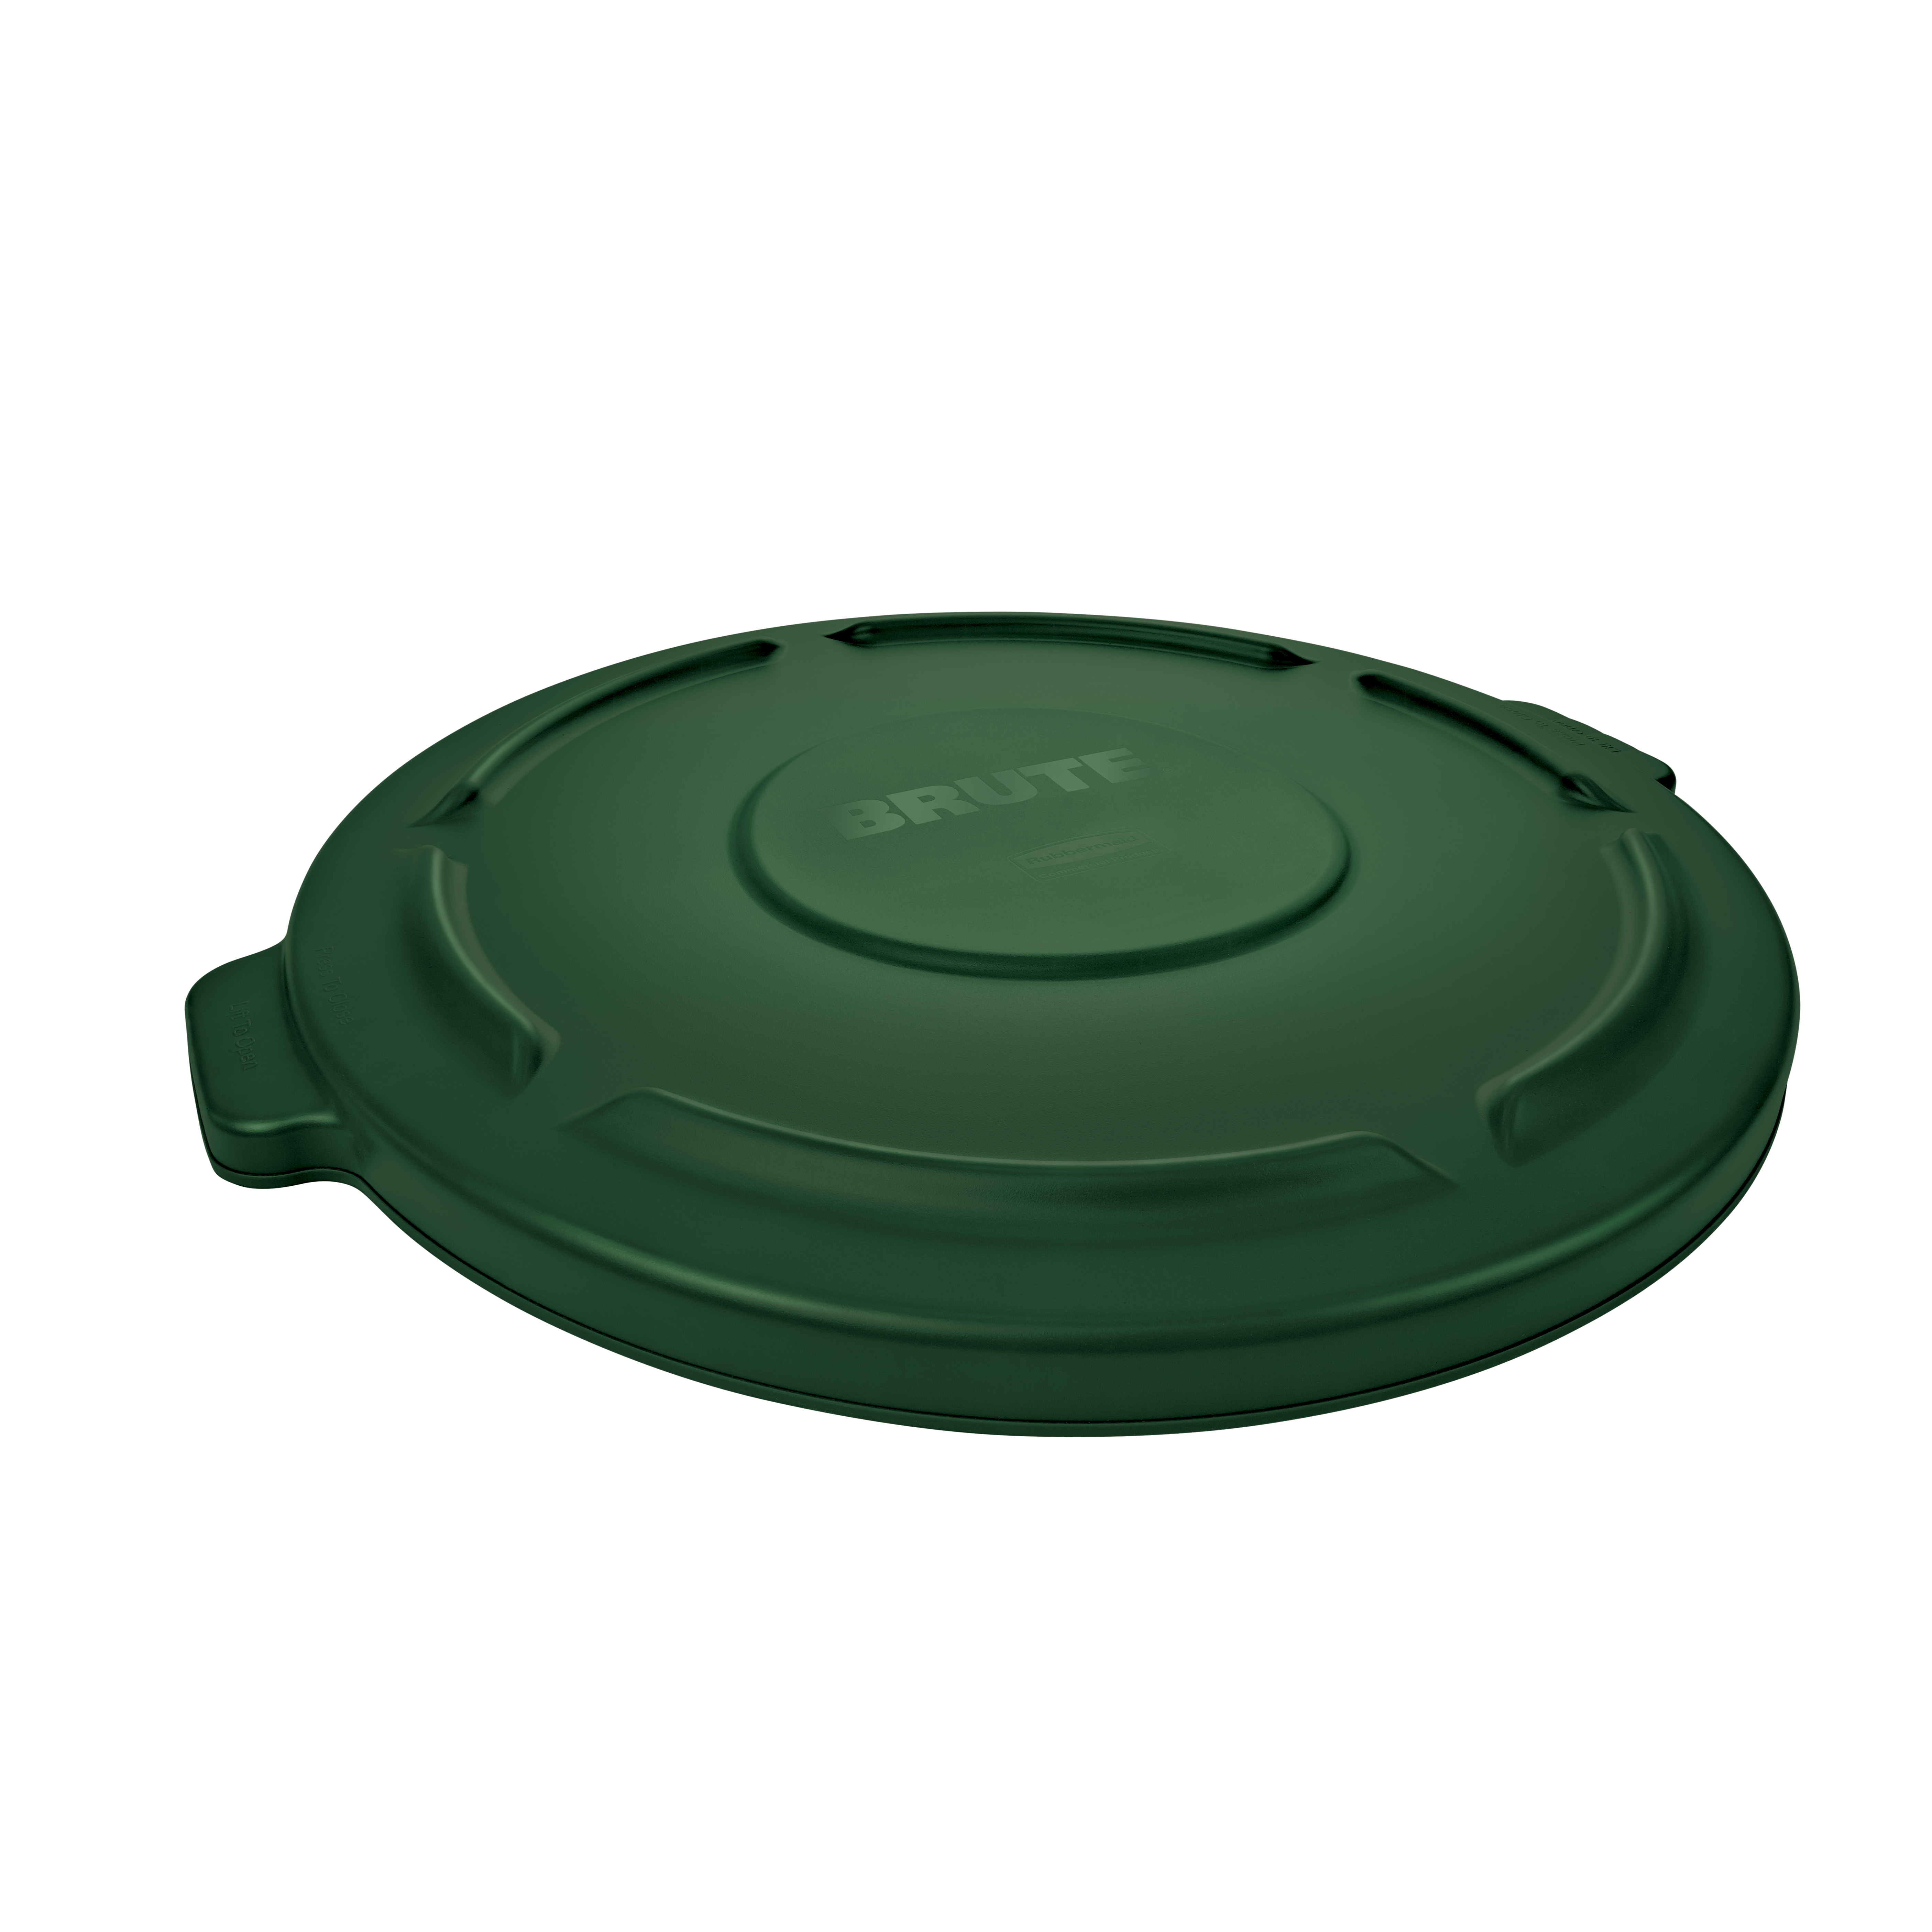 Rubbermaid Commercial Products FG261960DGRN trash receptacle lid / top